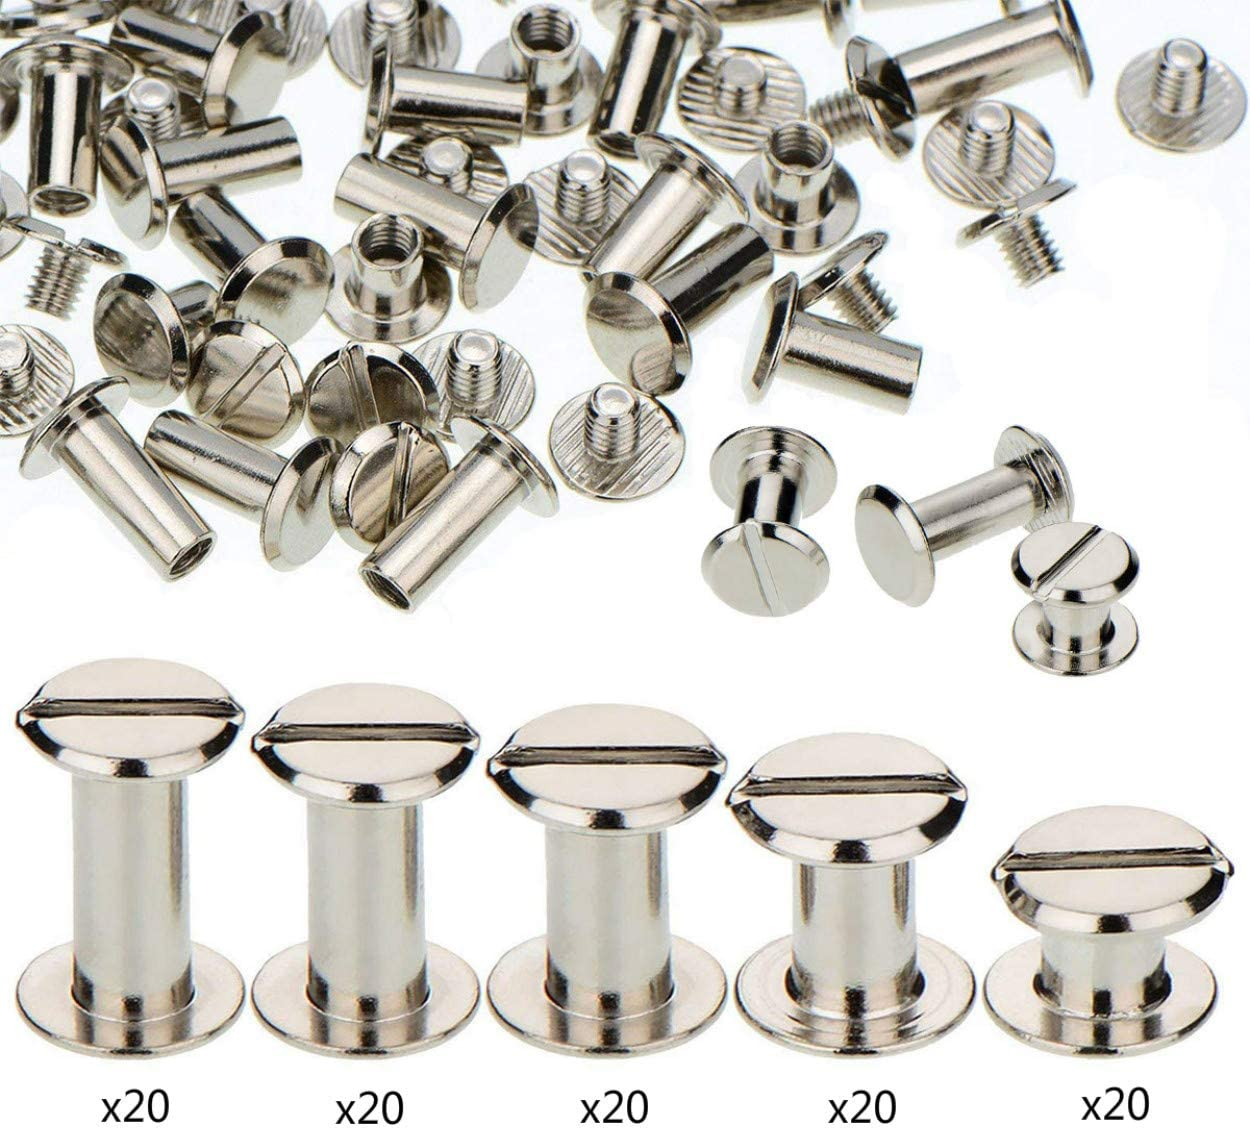 100 Sets Screw Post Metal Chicago Screws Binding Screw Leather Screw Nail Rivet Button Solid Belt Tack Screw (Silvery, M5x6/10/12/15/18 mm)